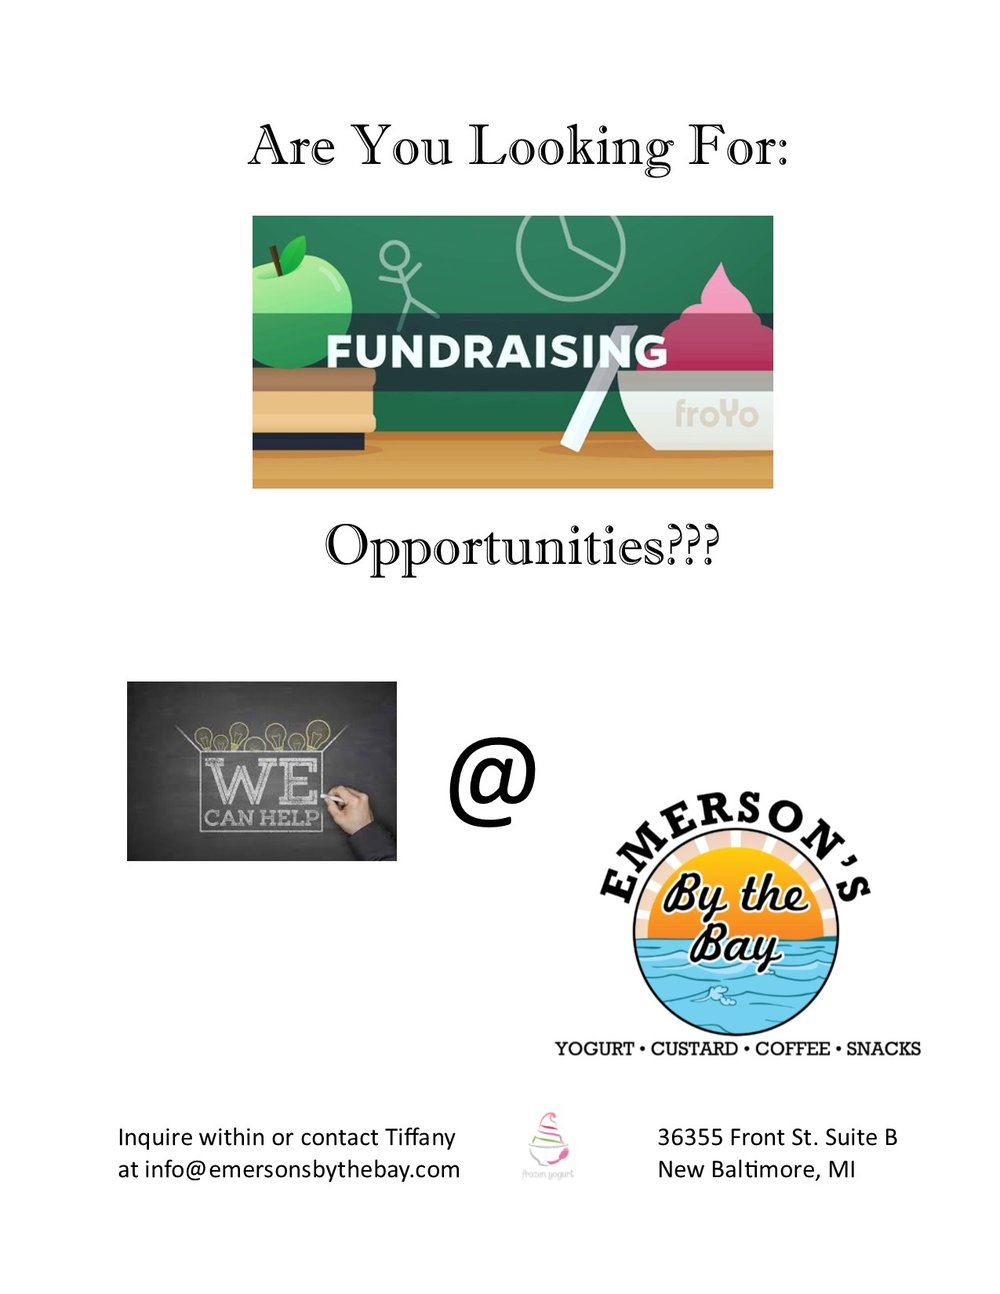 Have your fundraising event at EMERSON'S!